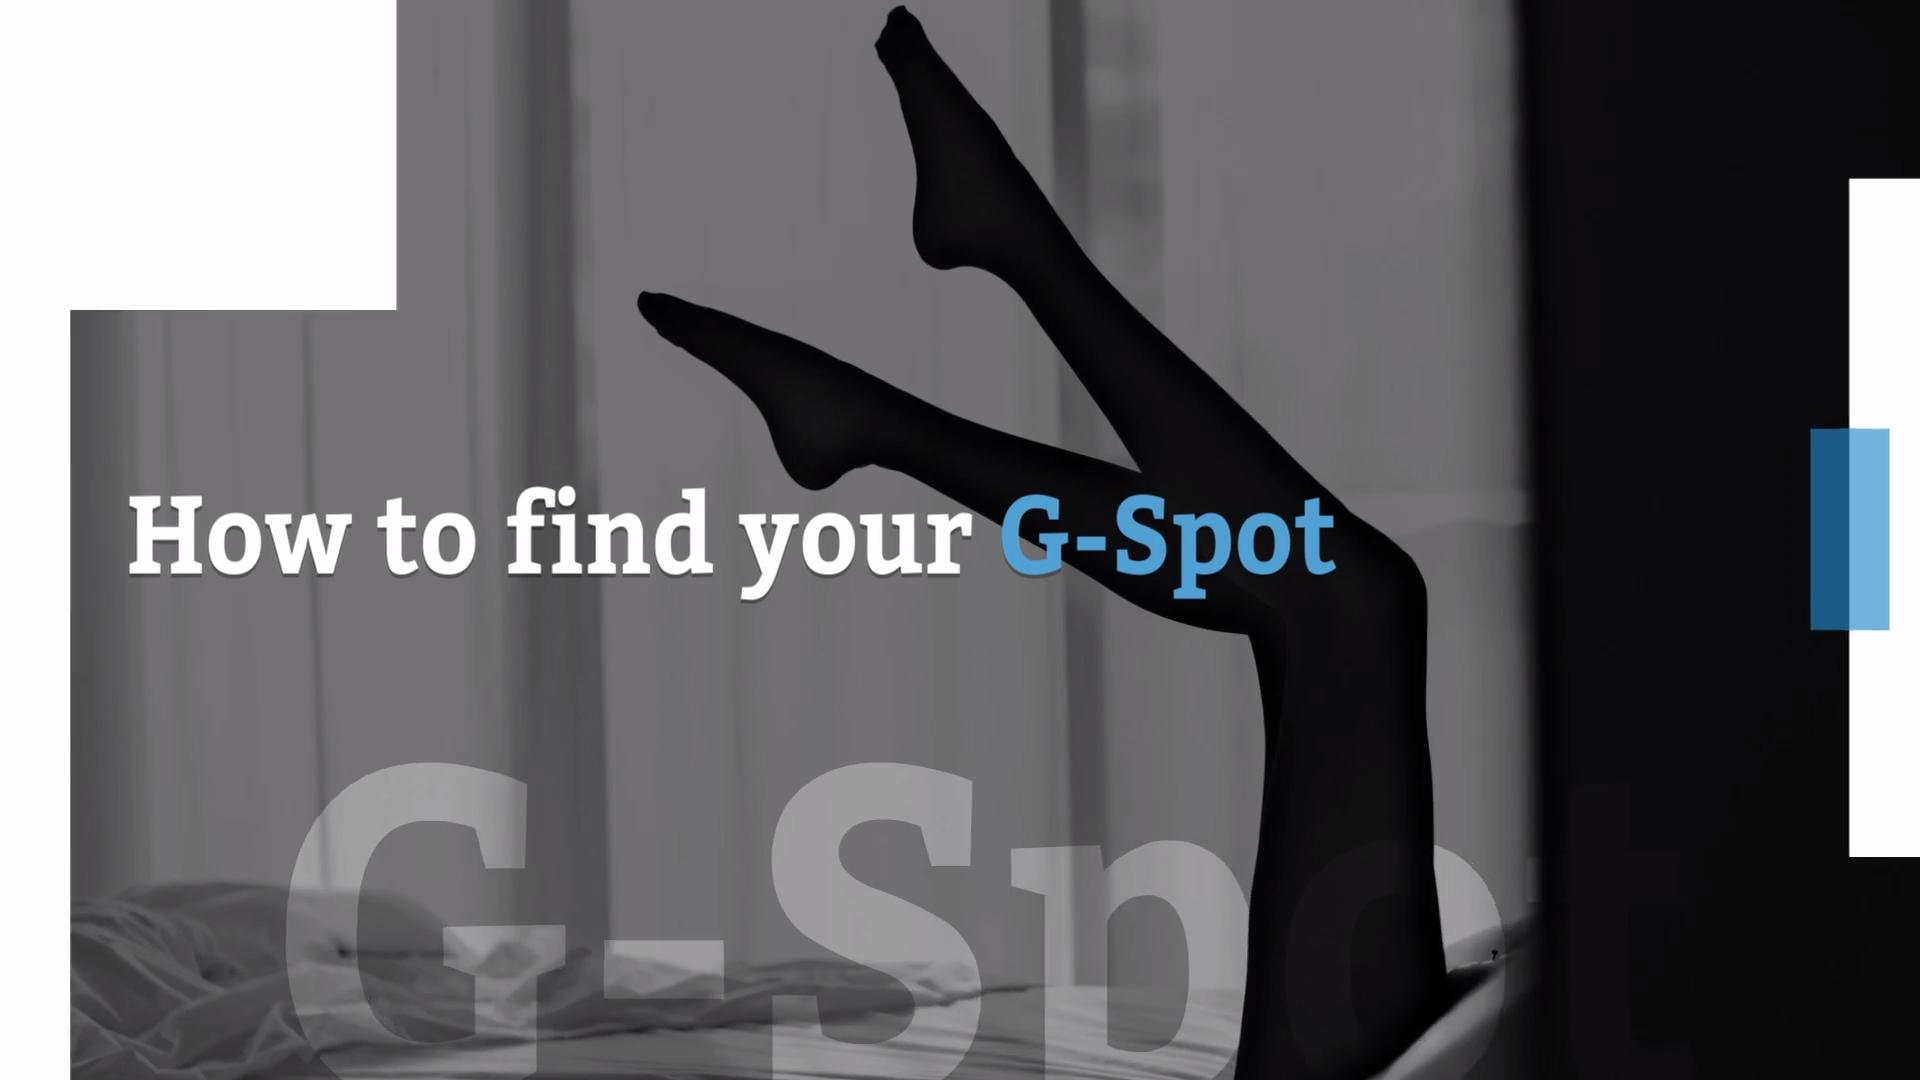 What exactly is your G-spot?